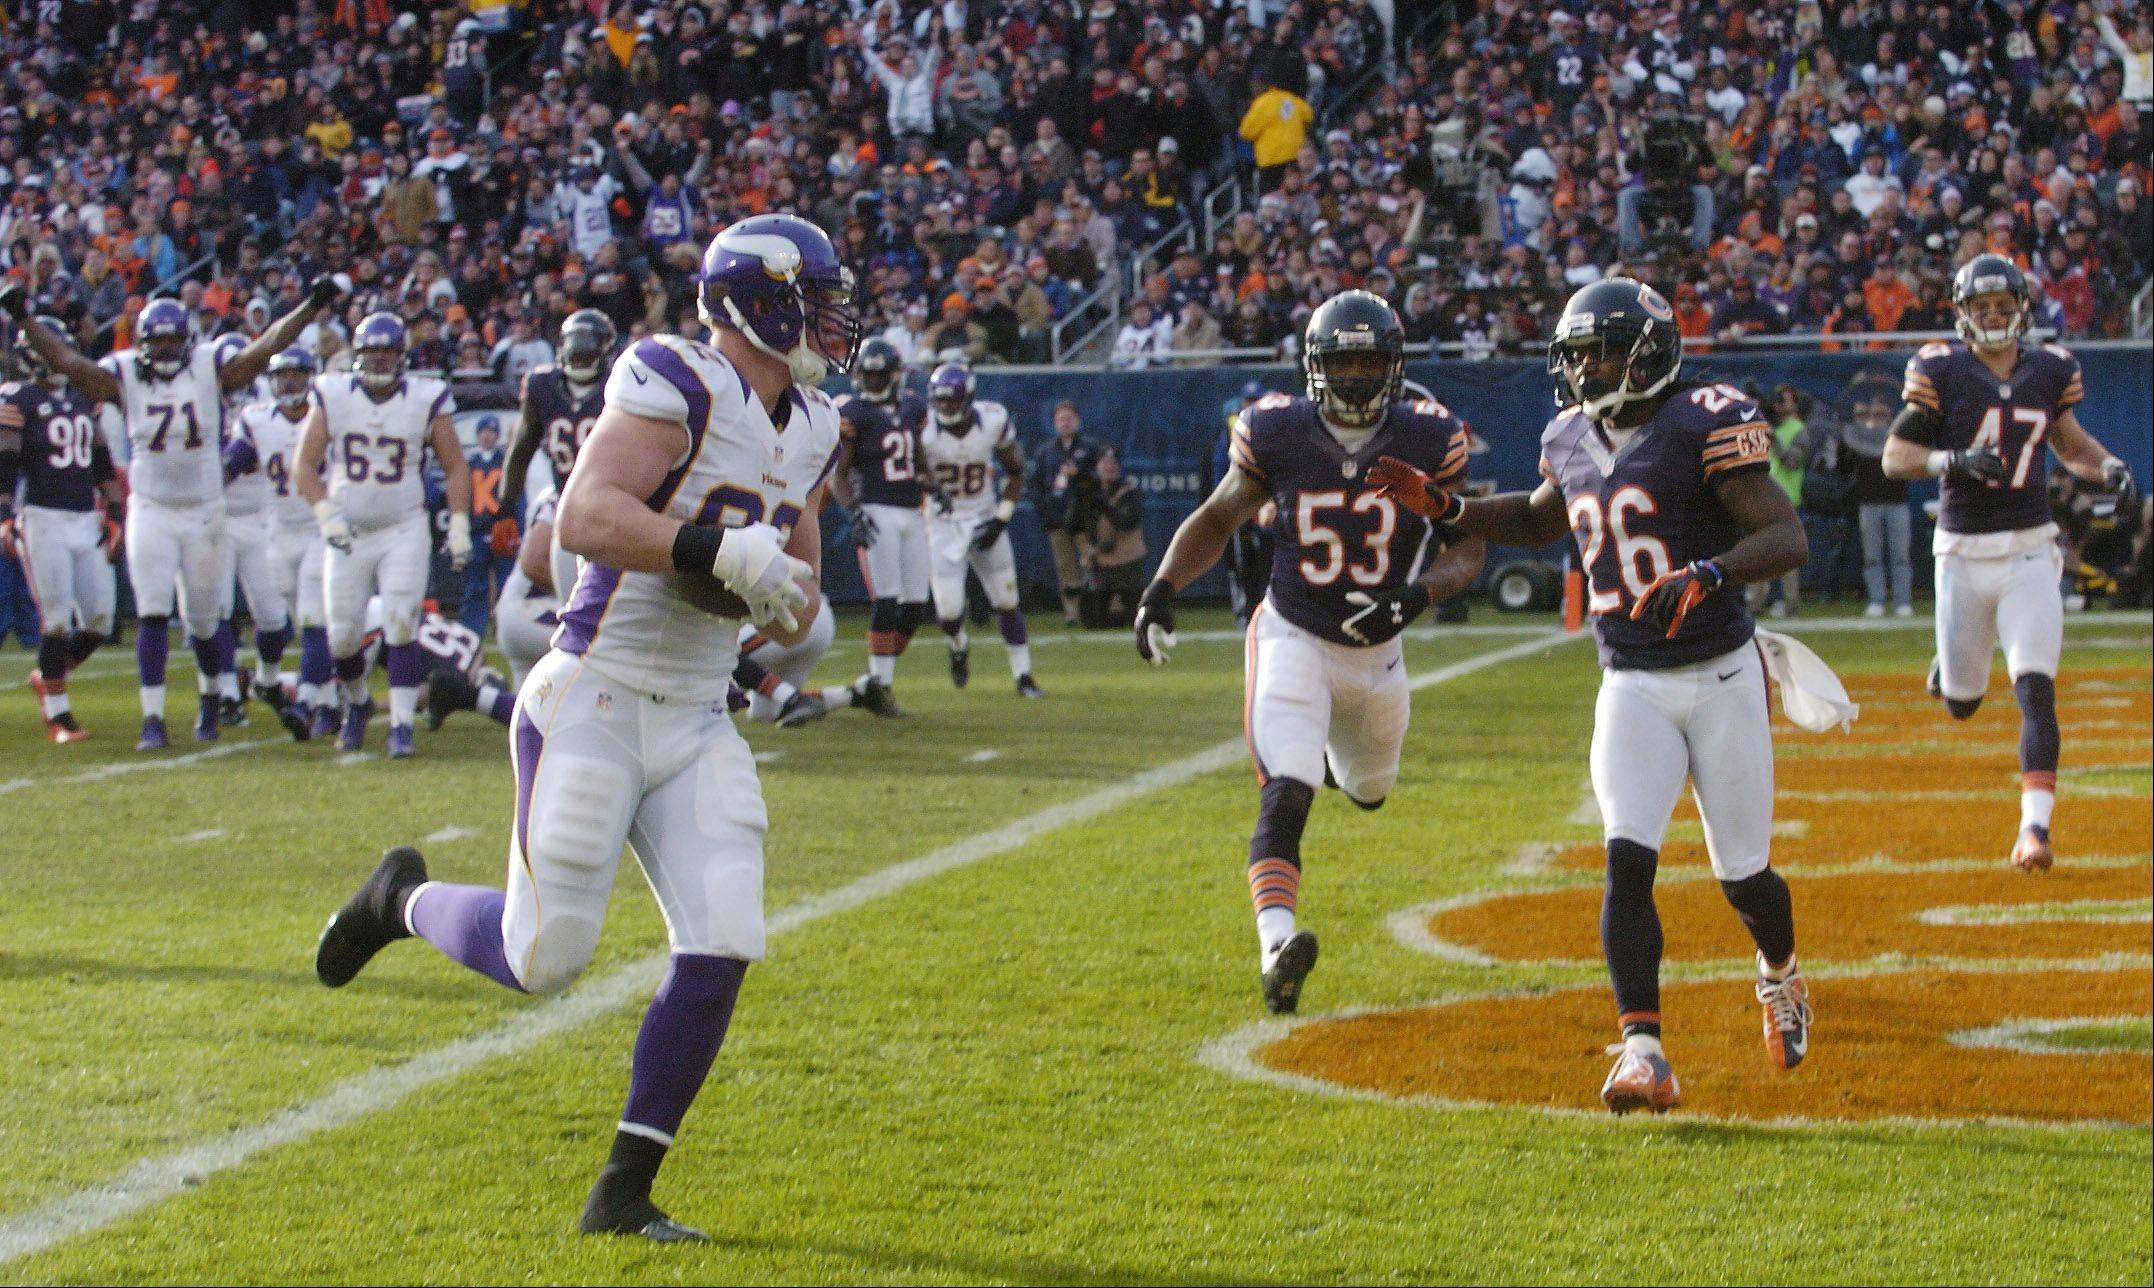 Minnesota Vikings tight end Kyle Rudolph scores a third-quarter touchdown against the Bears at Soldier Field Sunday.